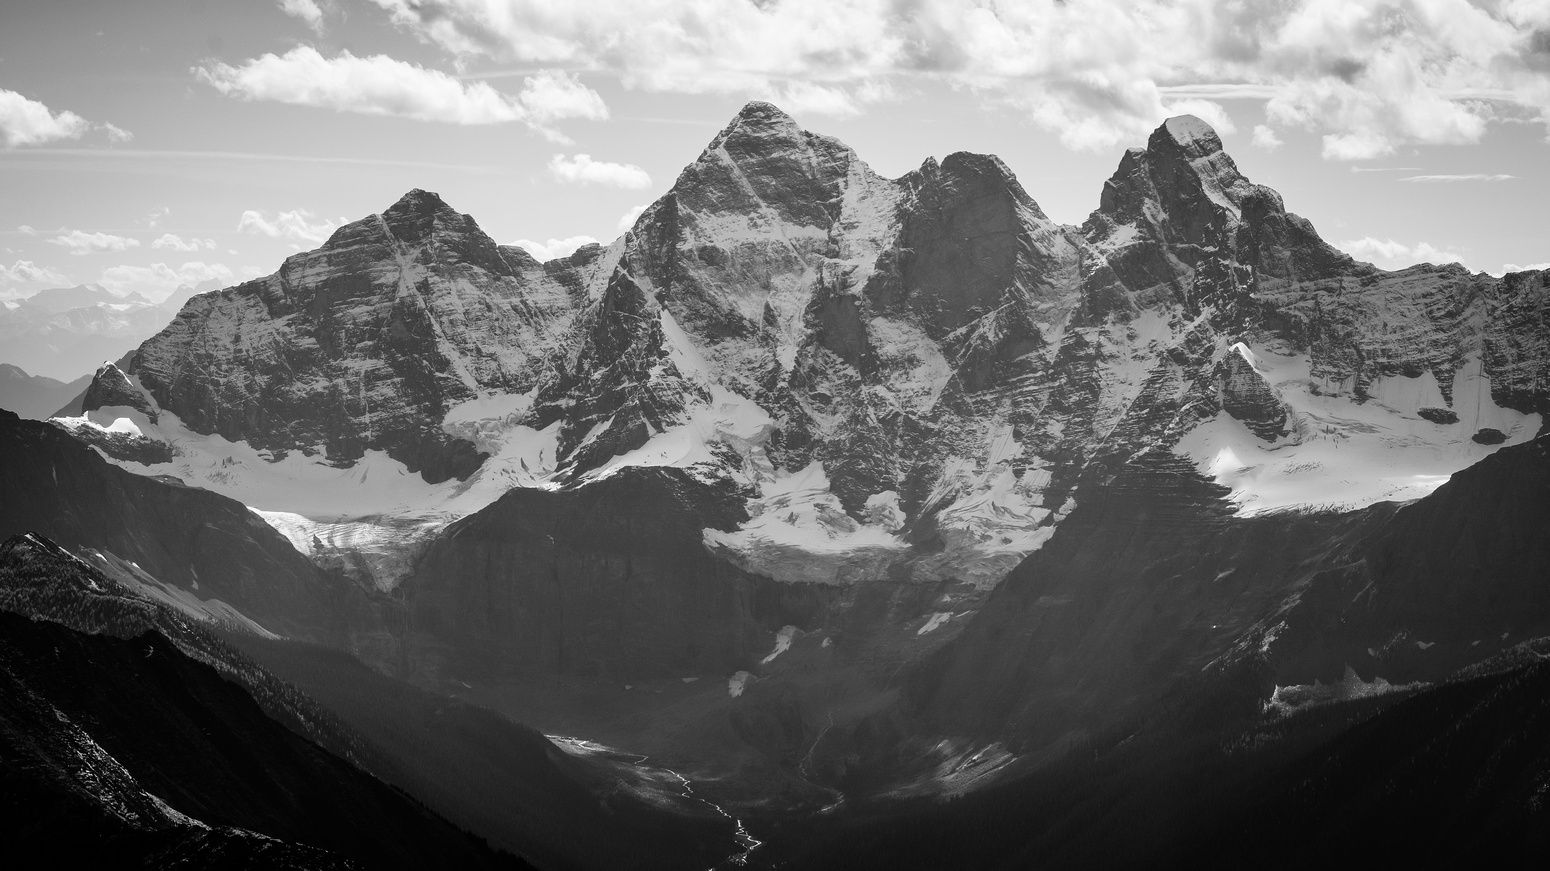 The incredible north faces of Sentry, Goodsir South, Center and North.